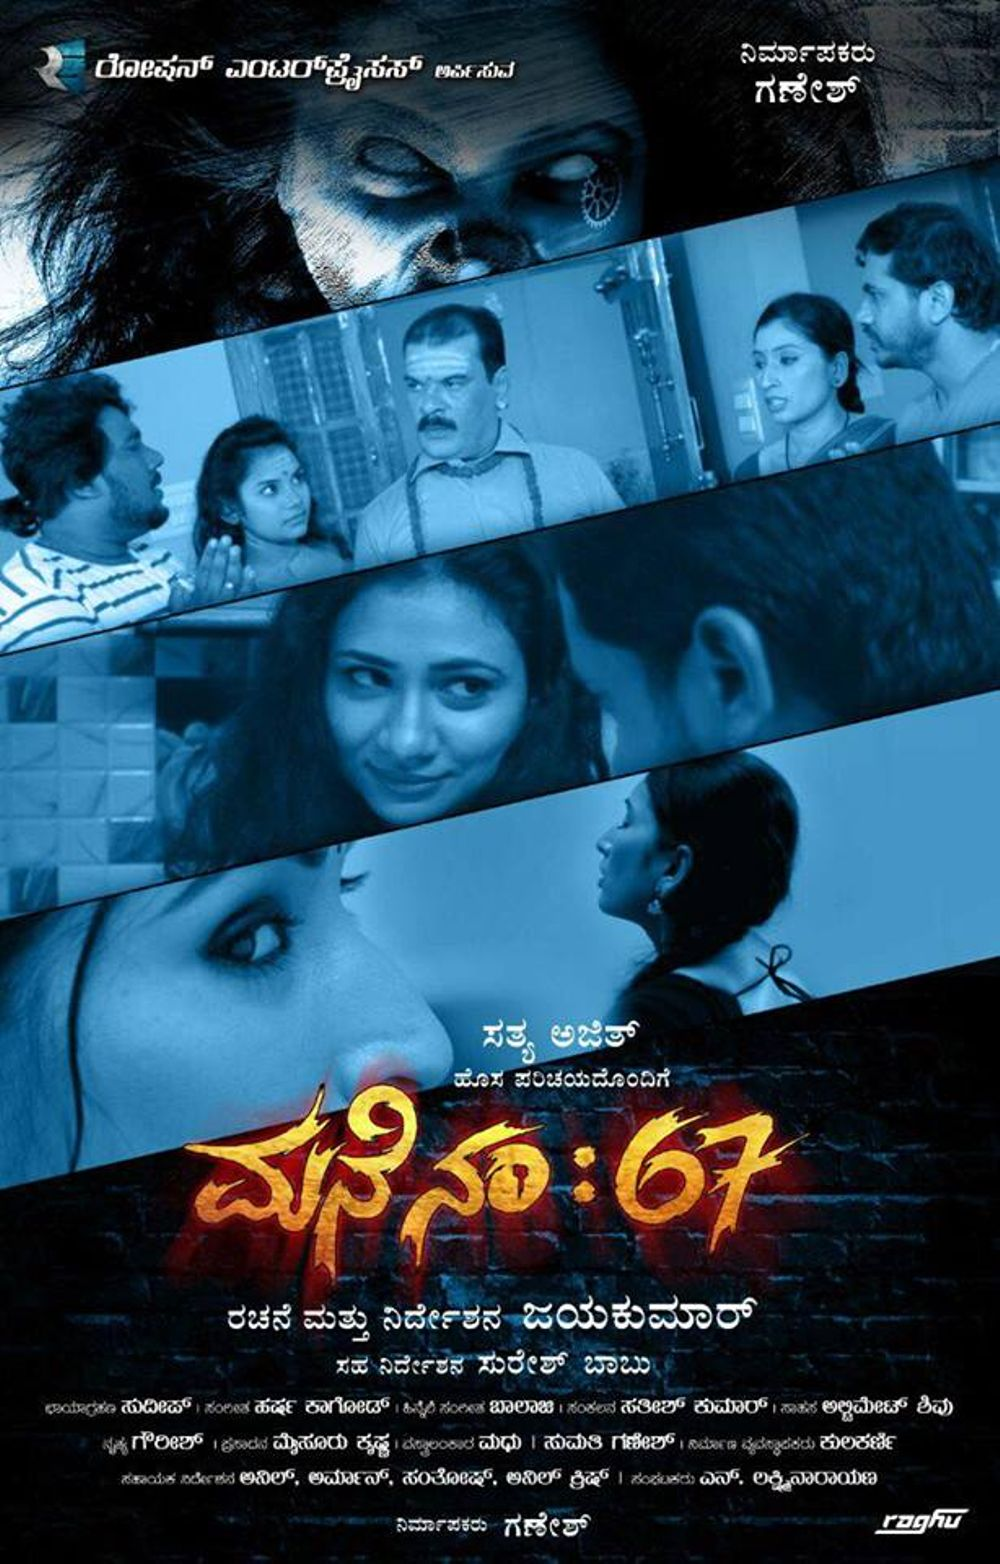 Mane No 67 Movie Review